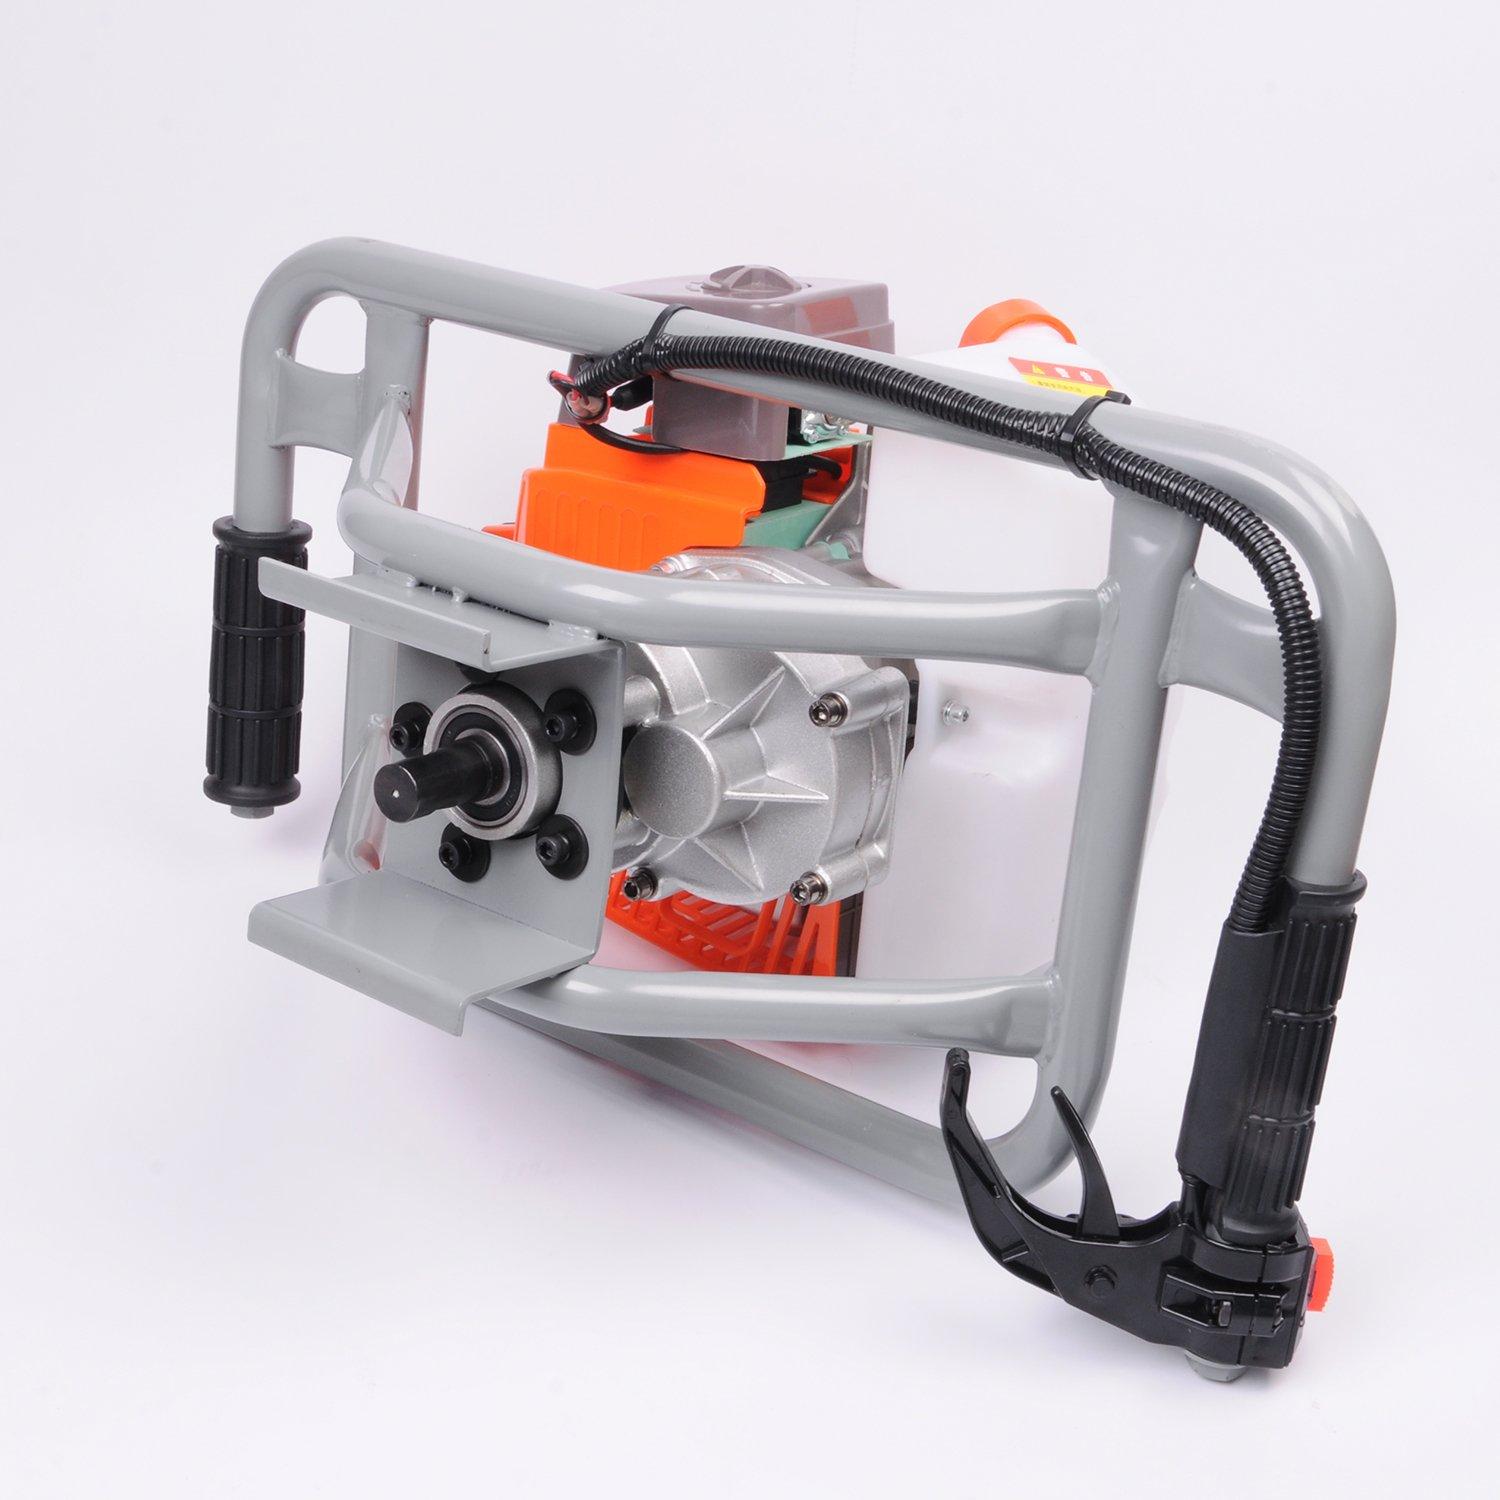 Wotefusi Power Digger 63cc 2.2KW Planter Post Hole Ground Drilling Machine 2T Petrol by Wotefusi (Image #3)